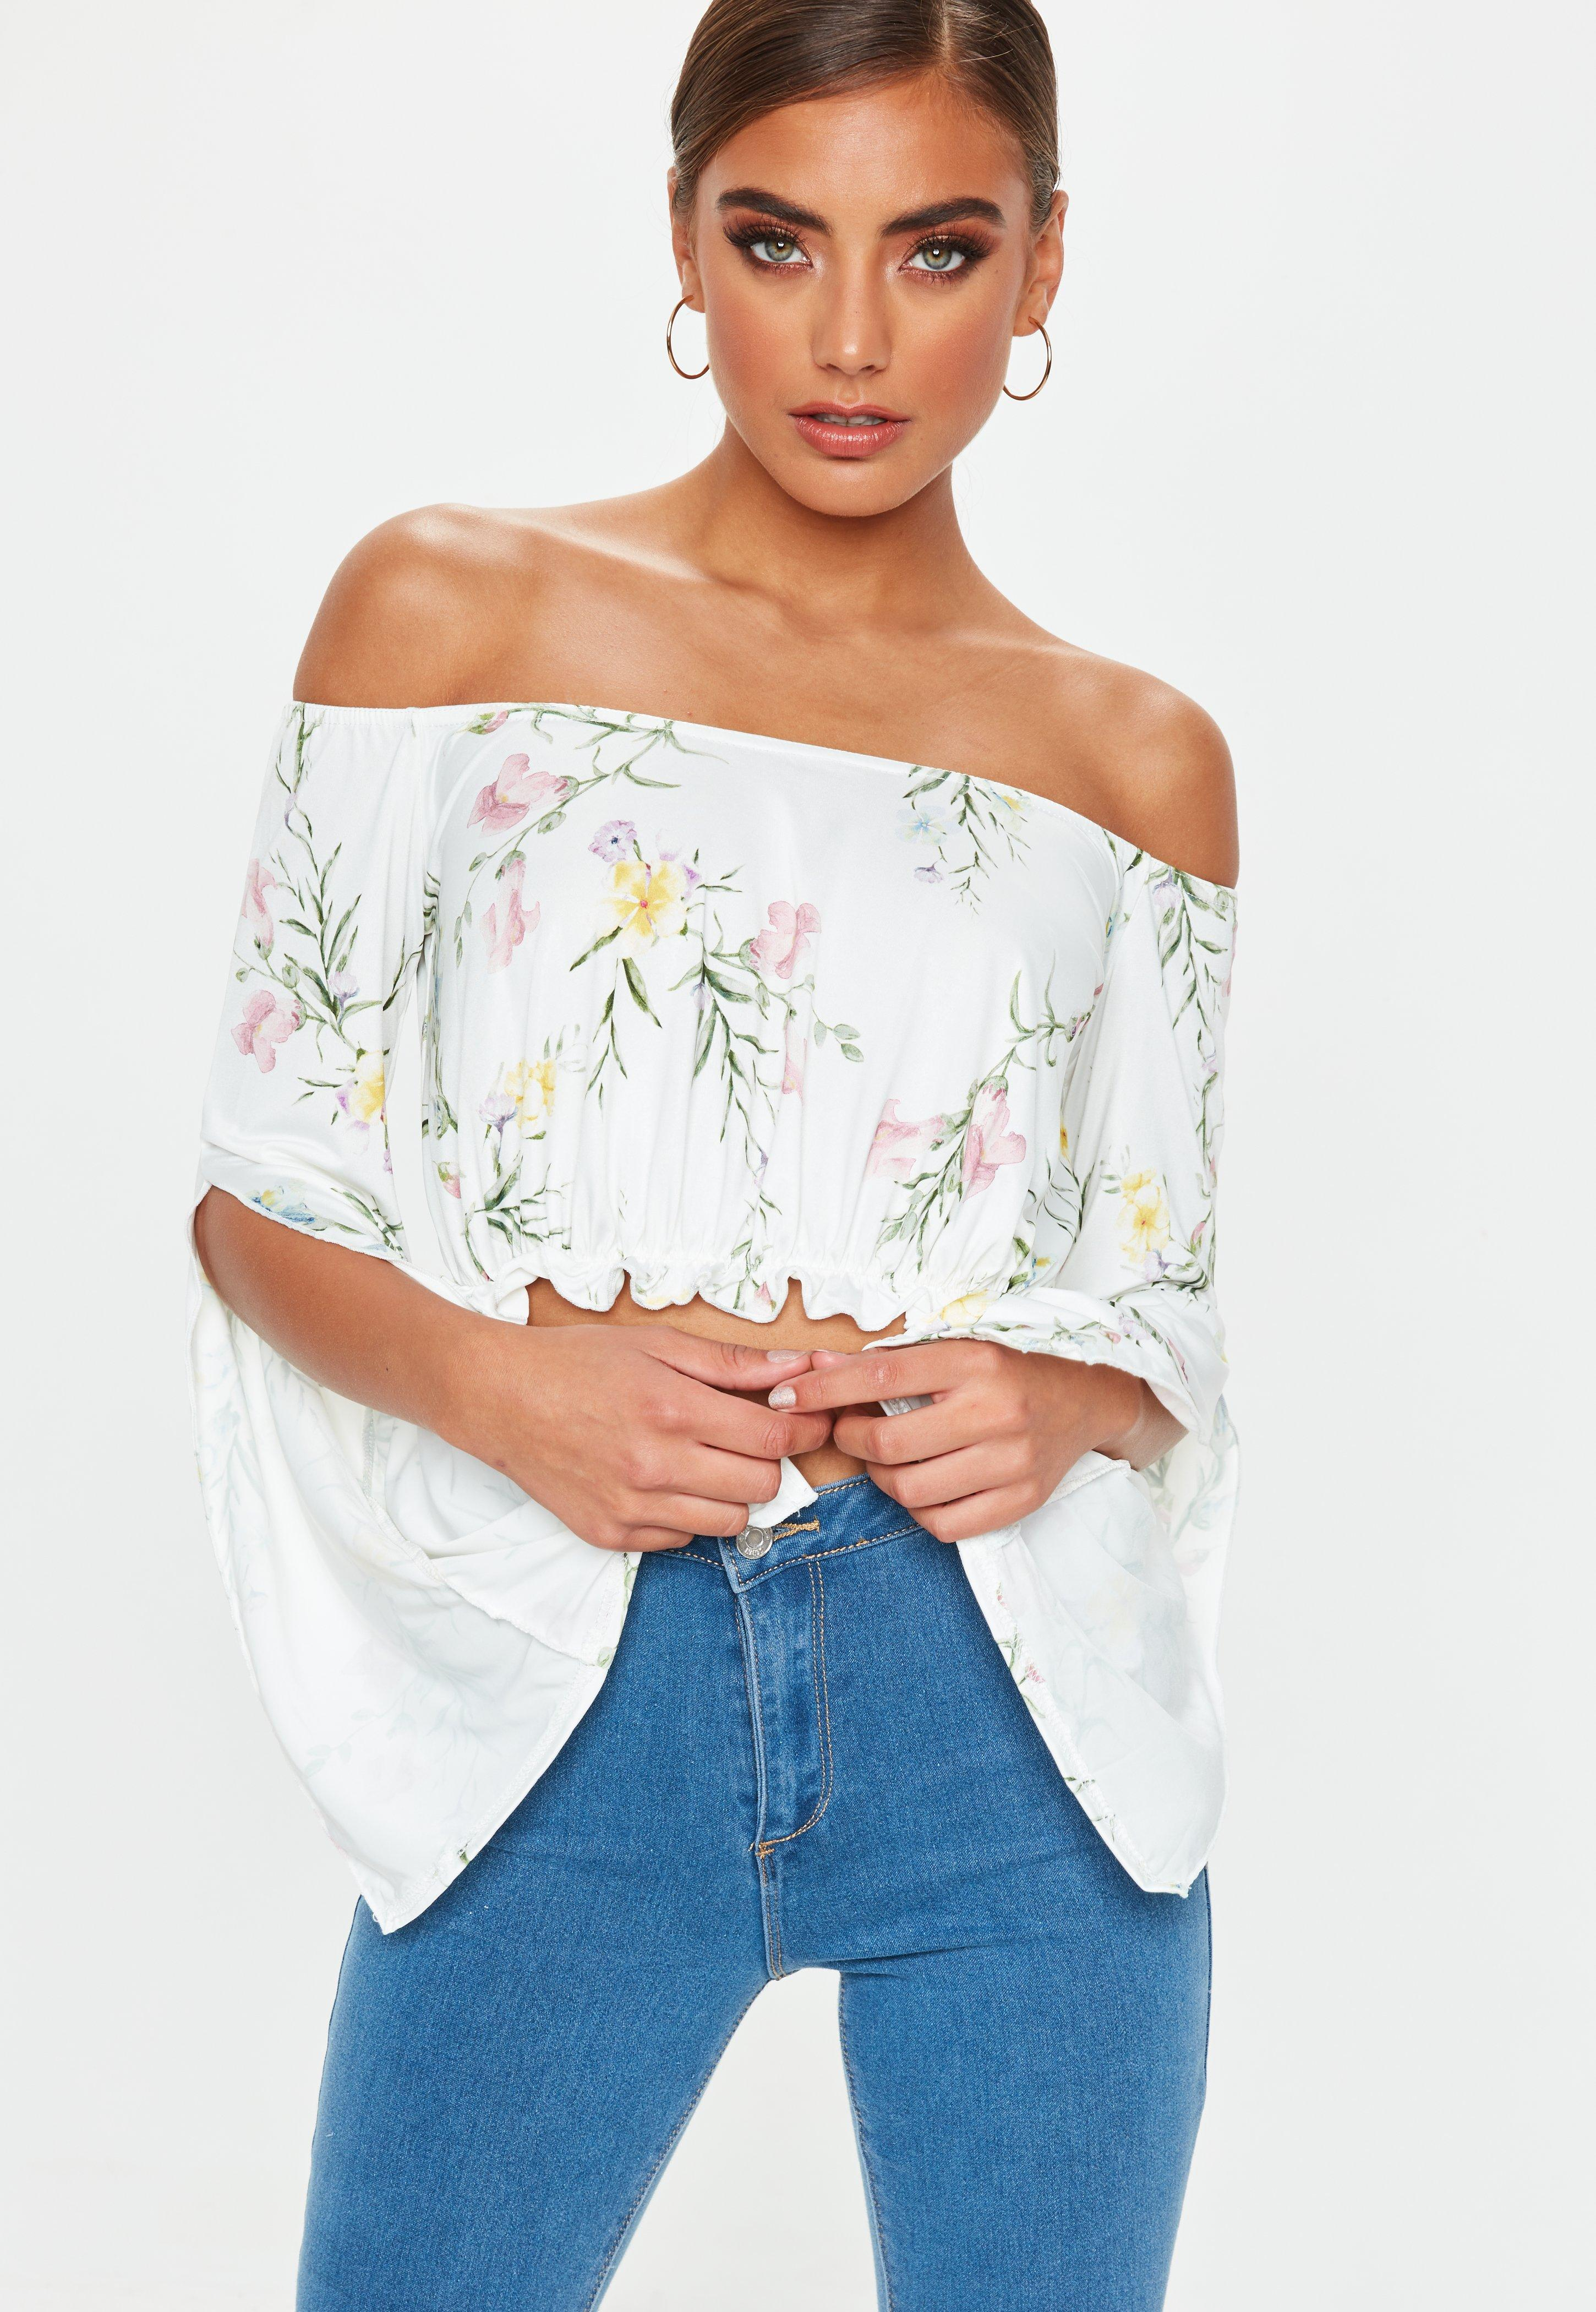 95331b6574ca5 Lyst - Missguided White Bardot Floral Crop Top in White